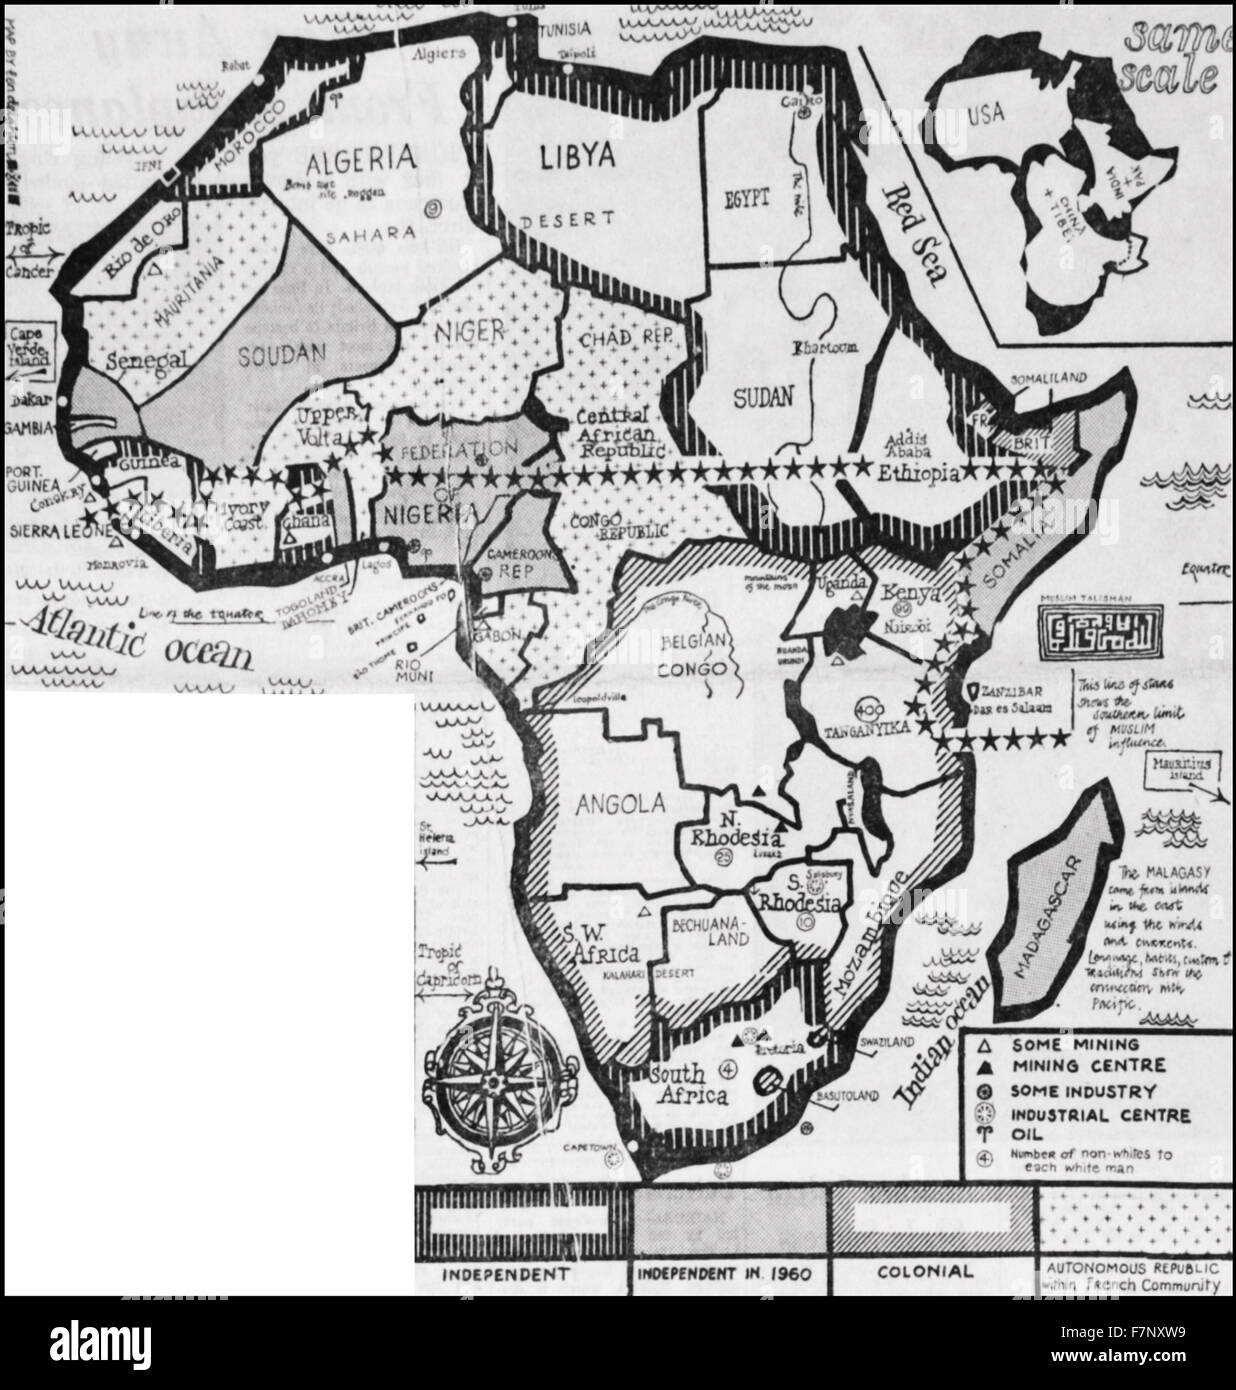 Map of Africa showing the independent states and European colonies in 1959 - Stock Image